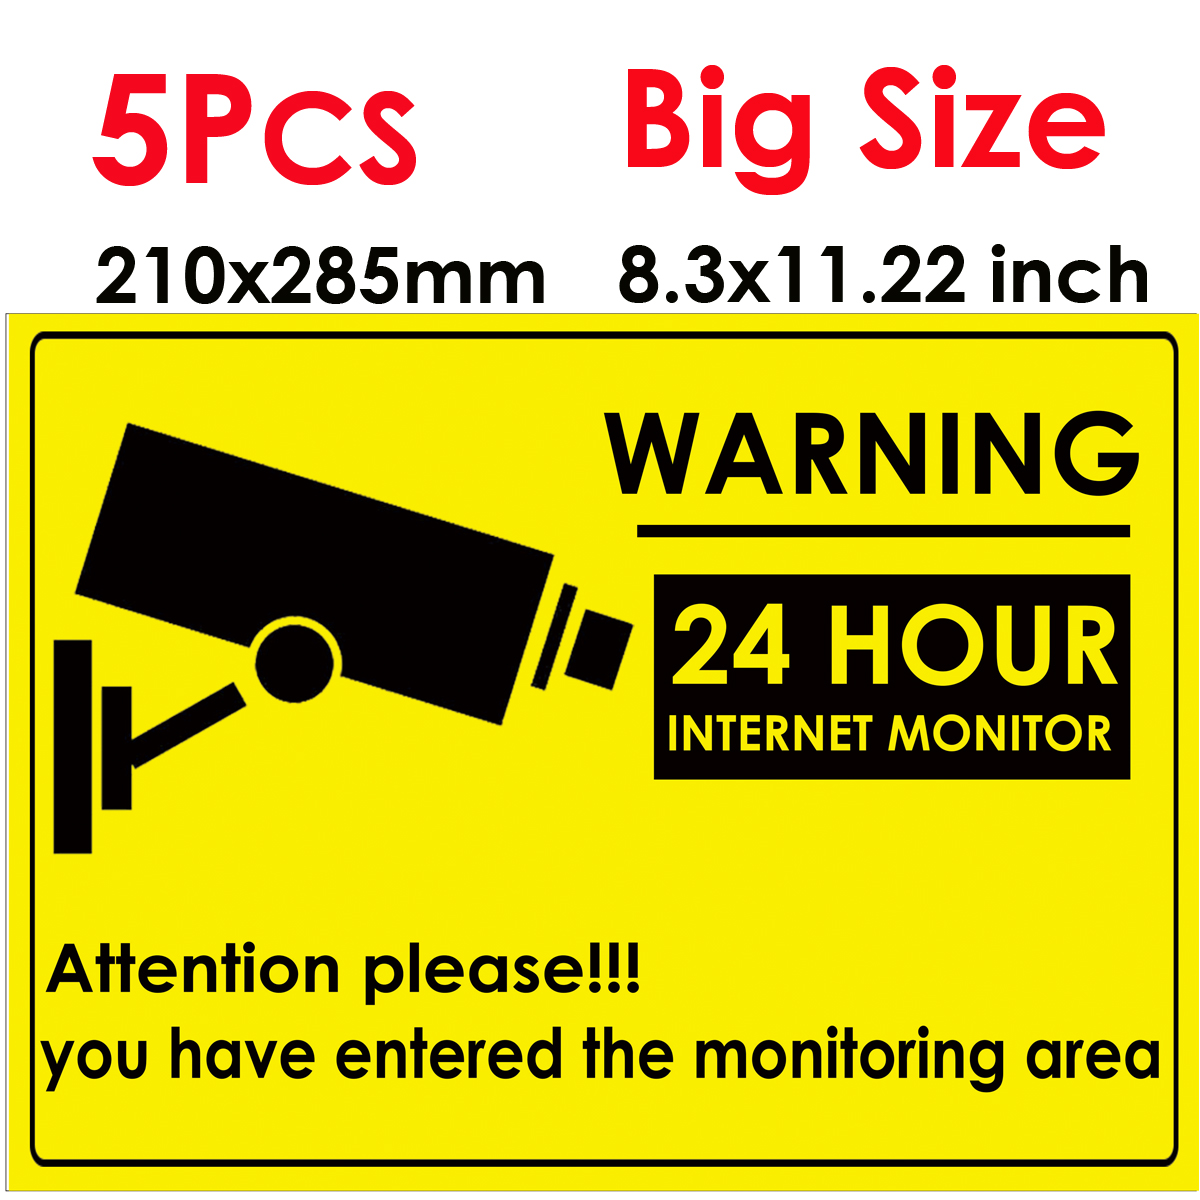 5pcs 24 HOUR CCTV Security Camera System Warning Sign Sticker Decal Surveillance CCTV Camera Video Warning Sticker Big Size 285x